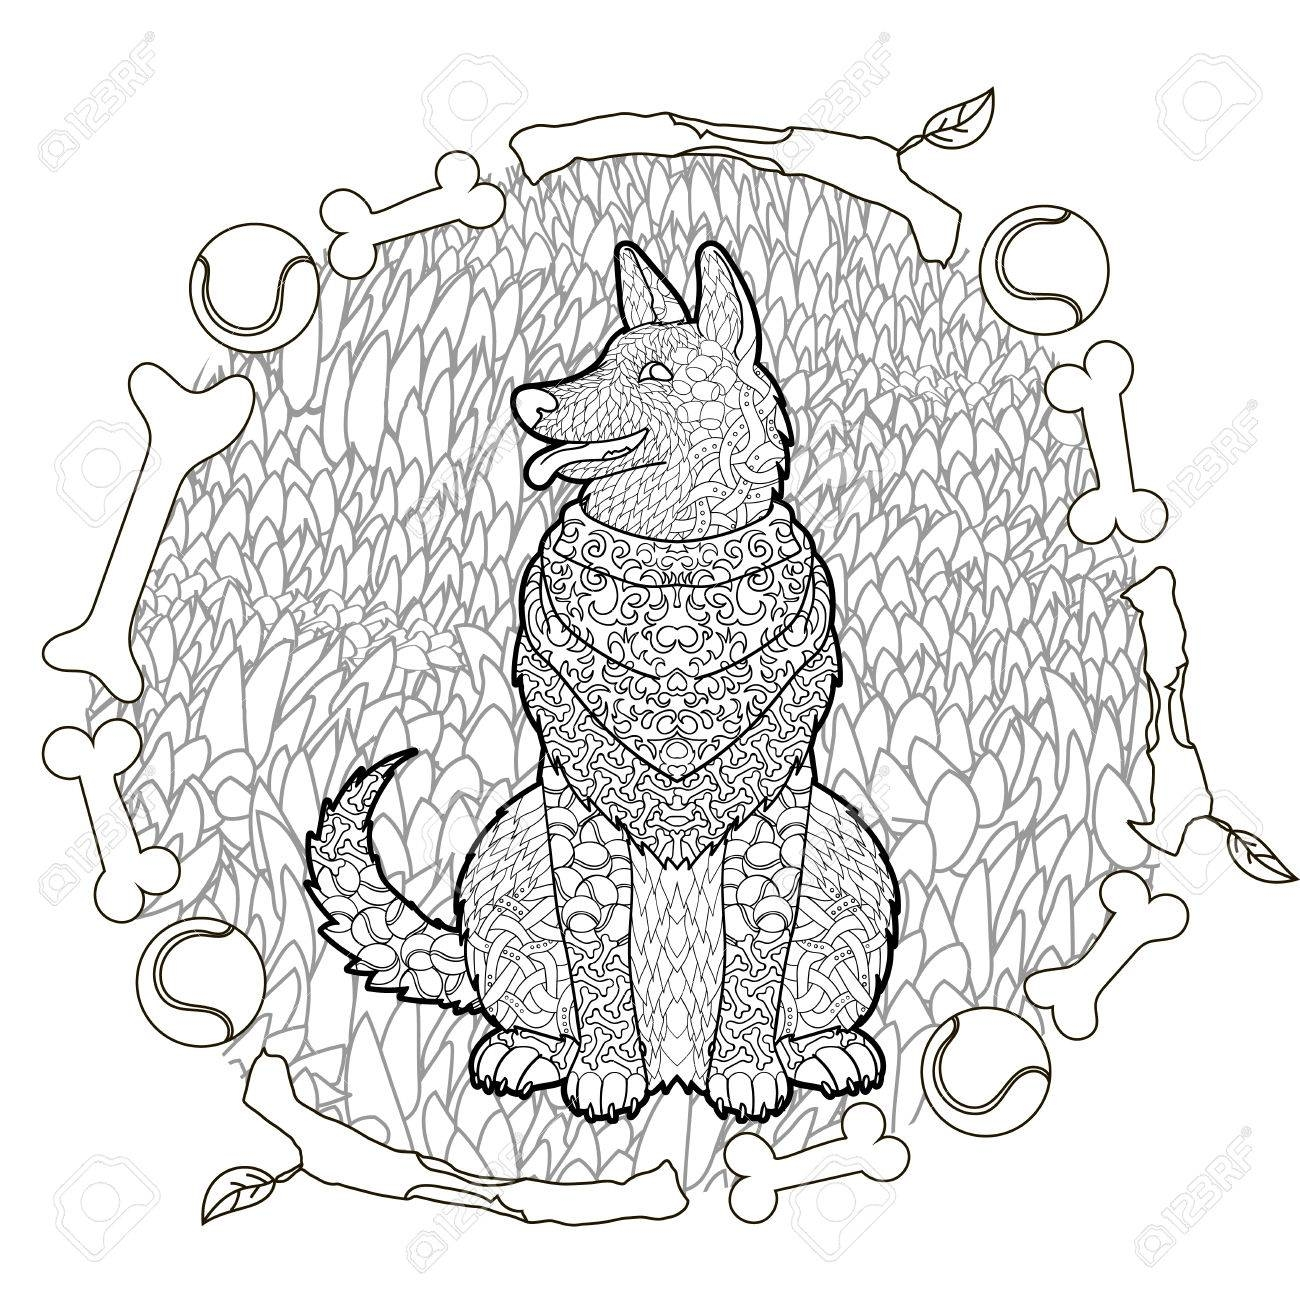 German Shepherd Coloring Pages At Getcolorings